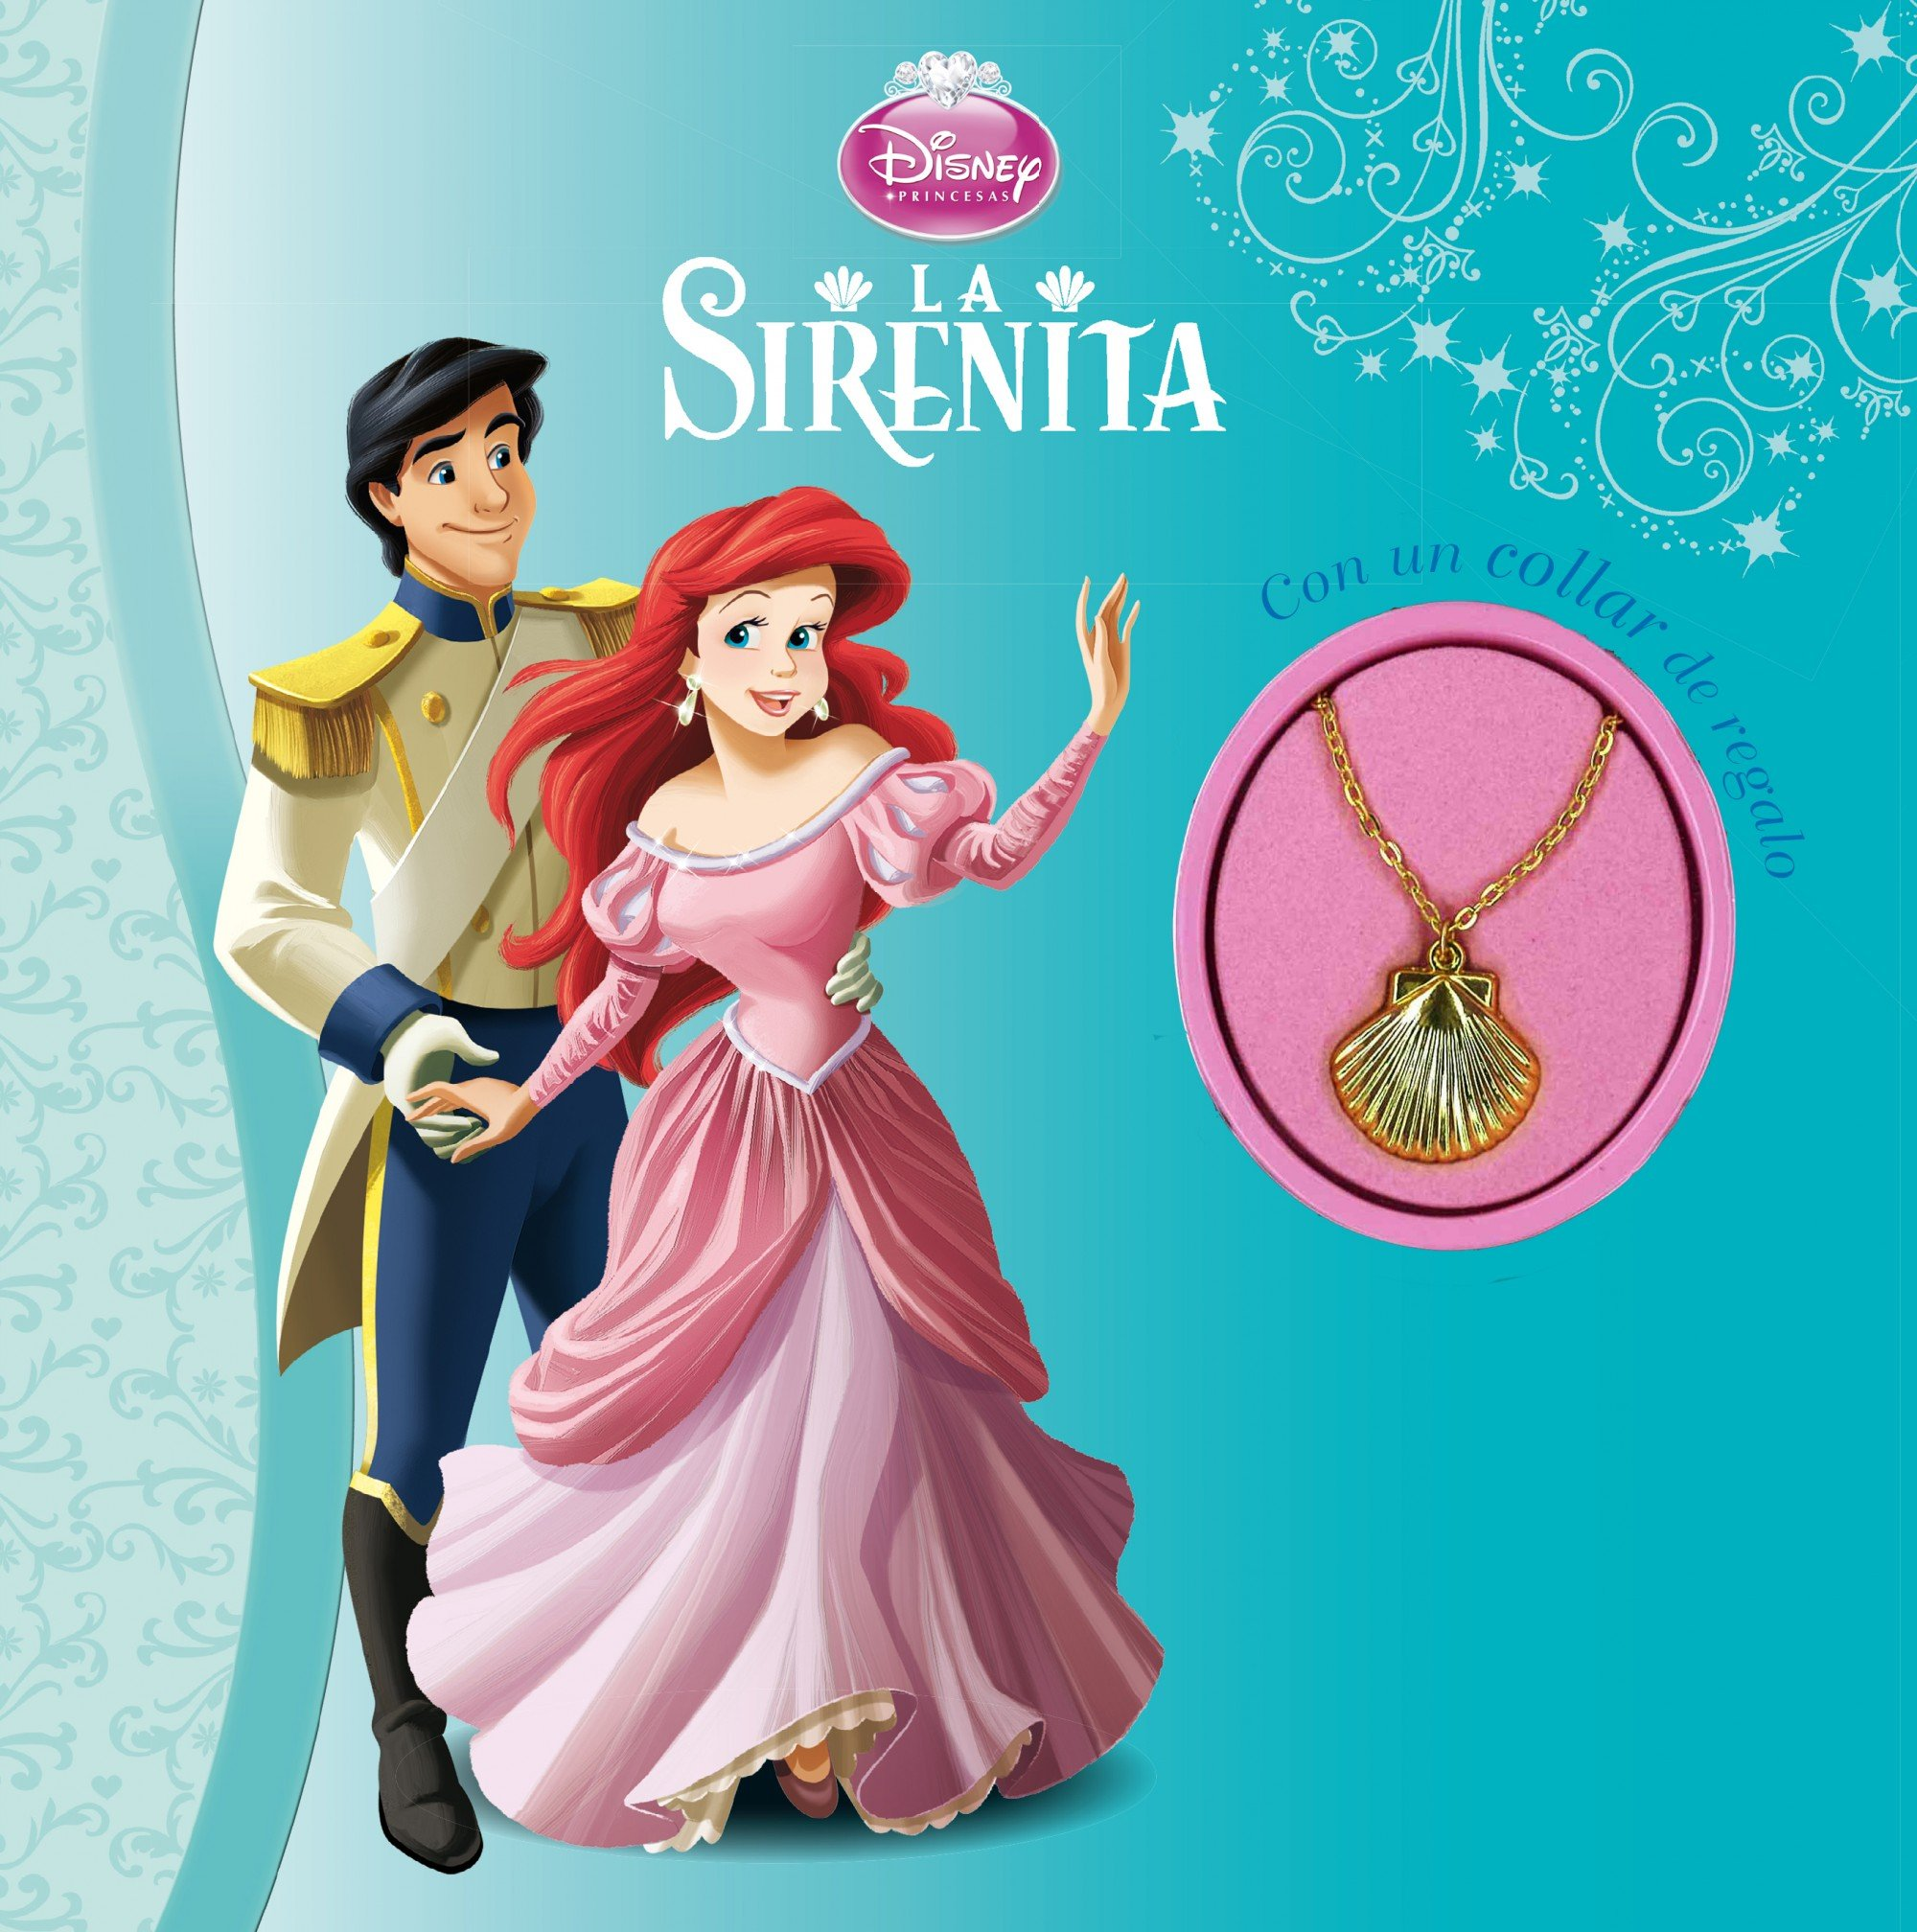 La Sirenita. Con un collar de regalo Disney. Princesas: Amazon.es: Disney, Editorial Planeta S. A.: Libros